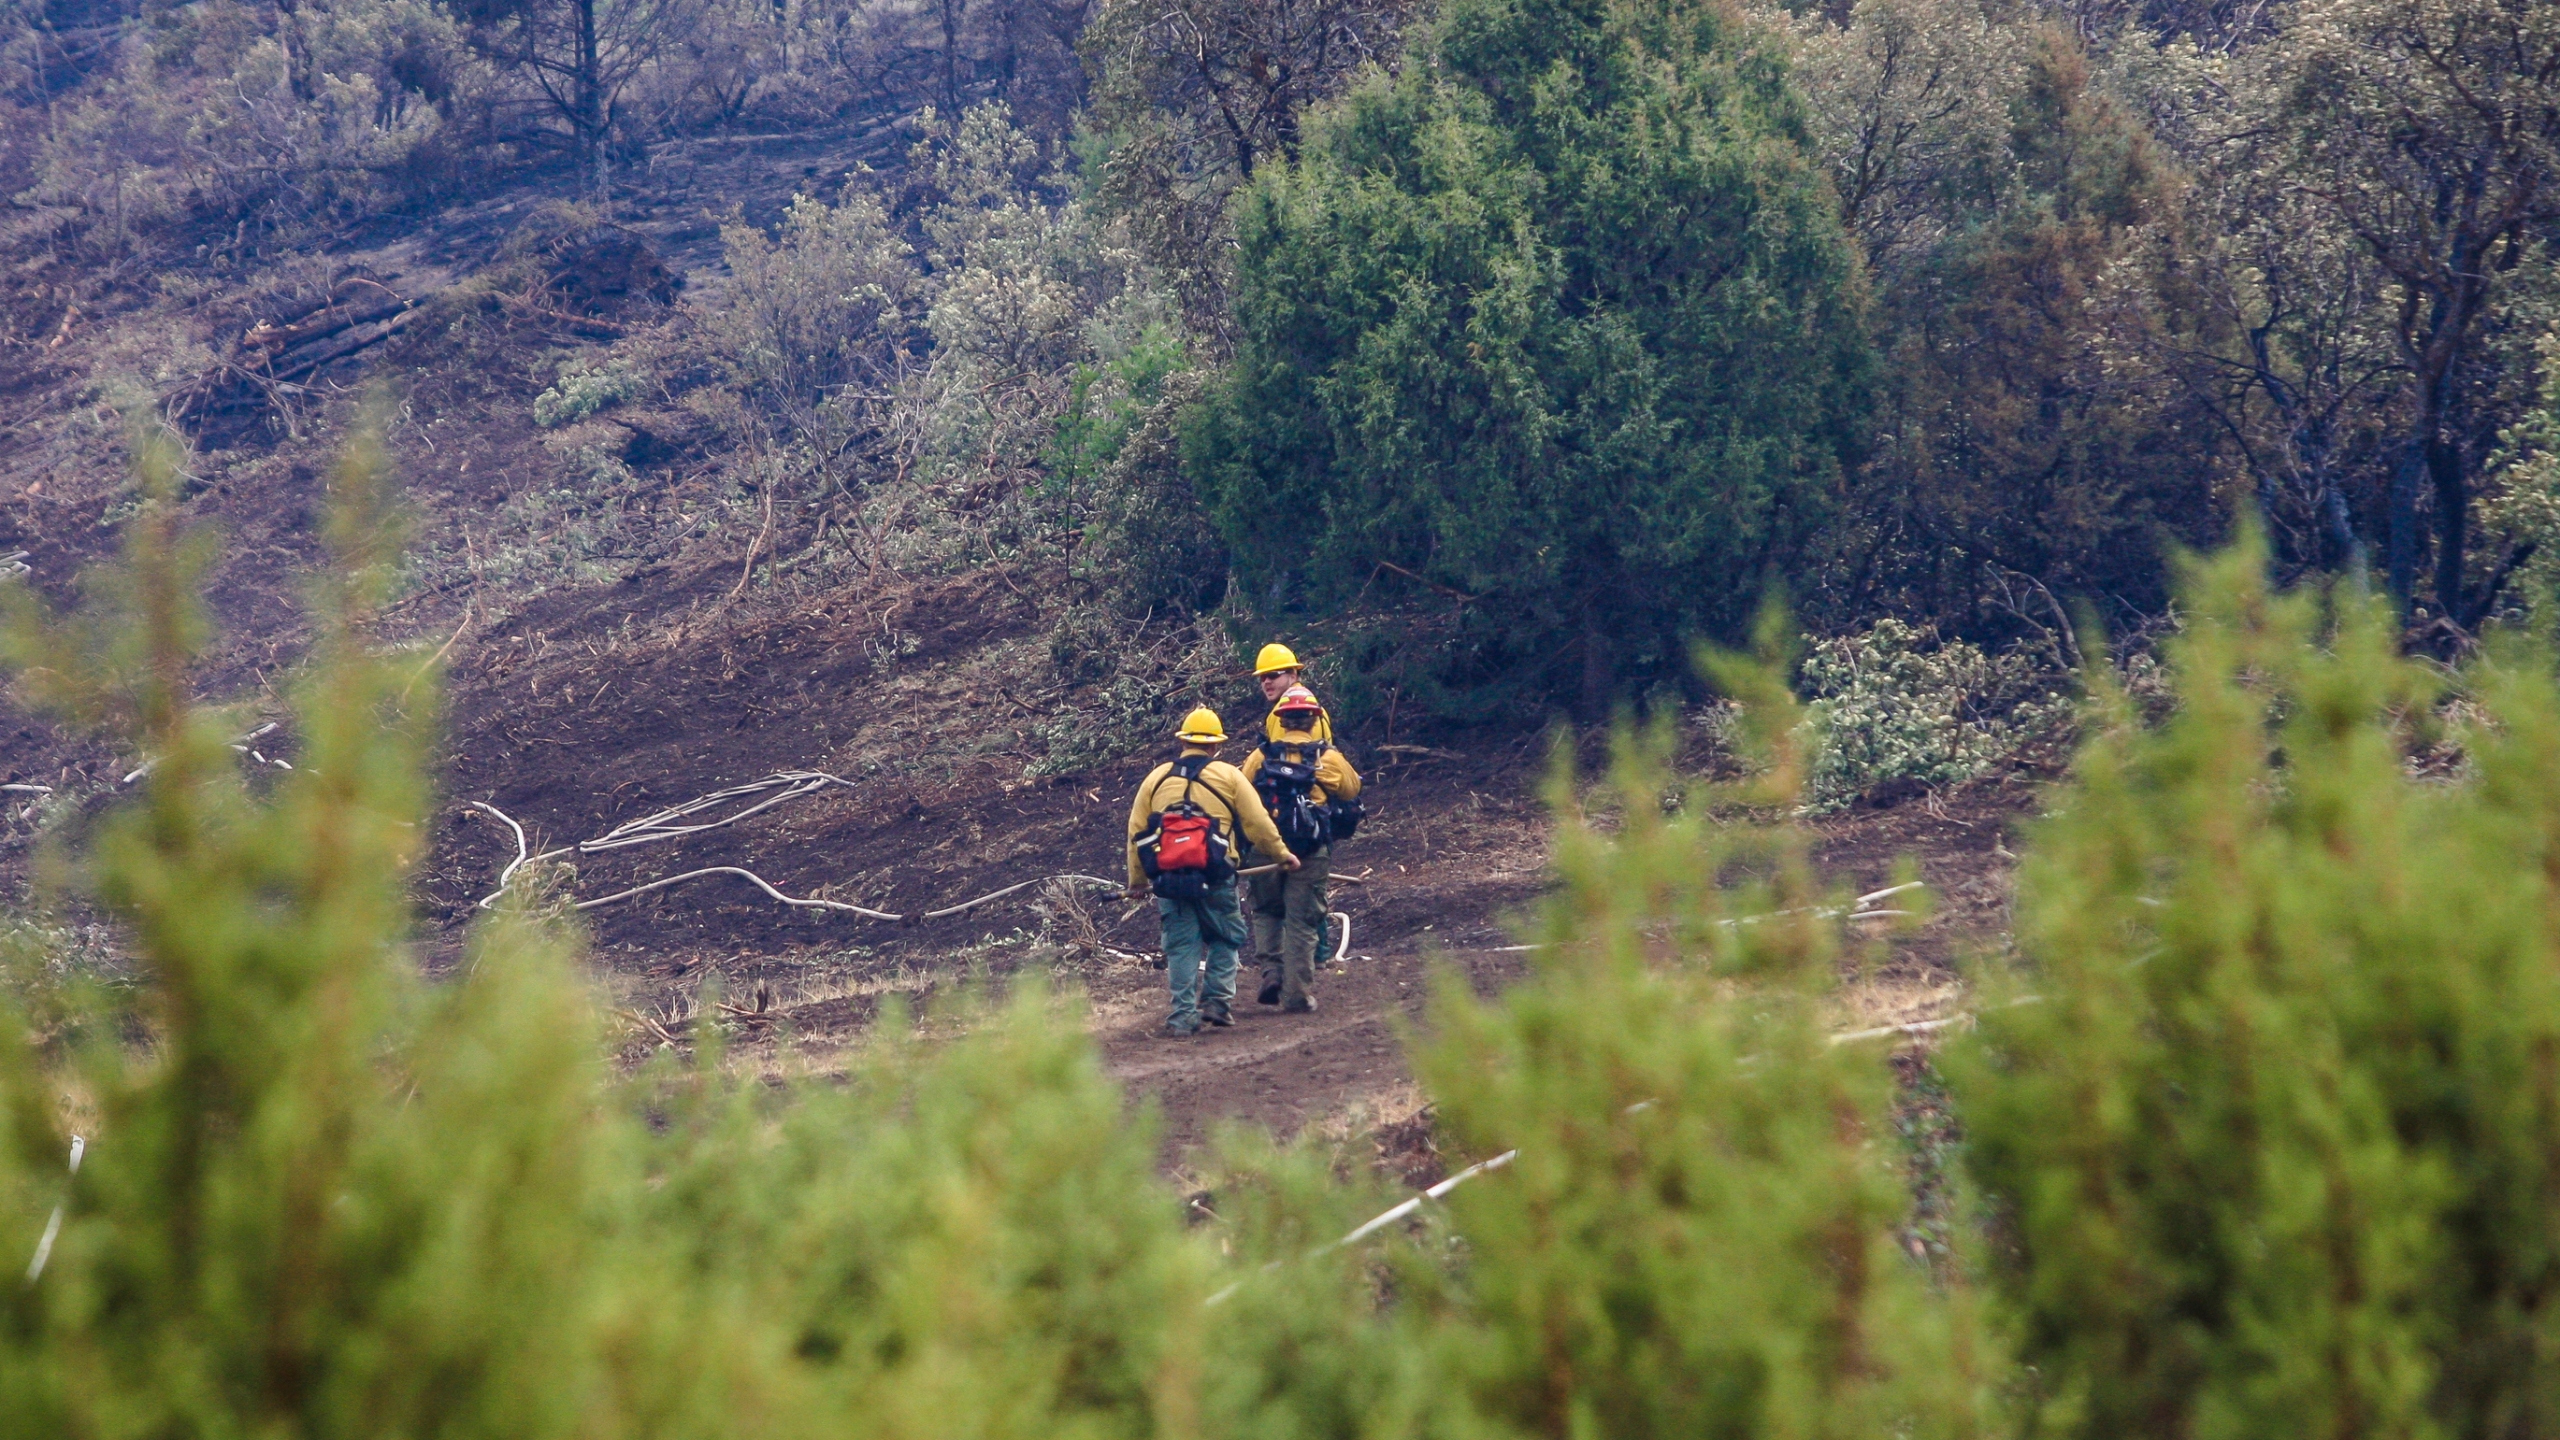 Crews go back to work fighting the Grizzly Creek Fire after sheltering from lighting Thursday, Aug. 20, above Bair Ranch, Colo. (Chris Dillmann/Vail Daily via AP)